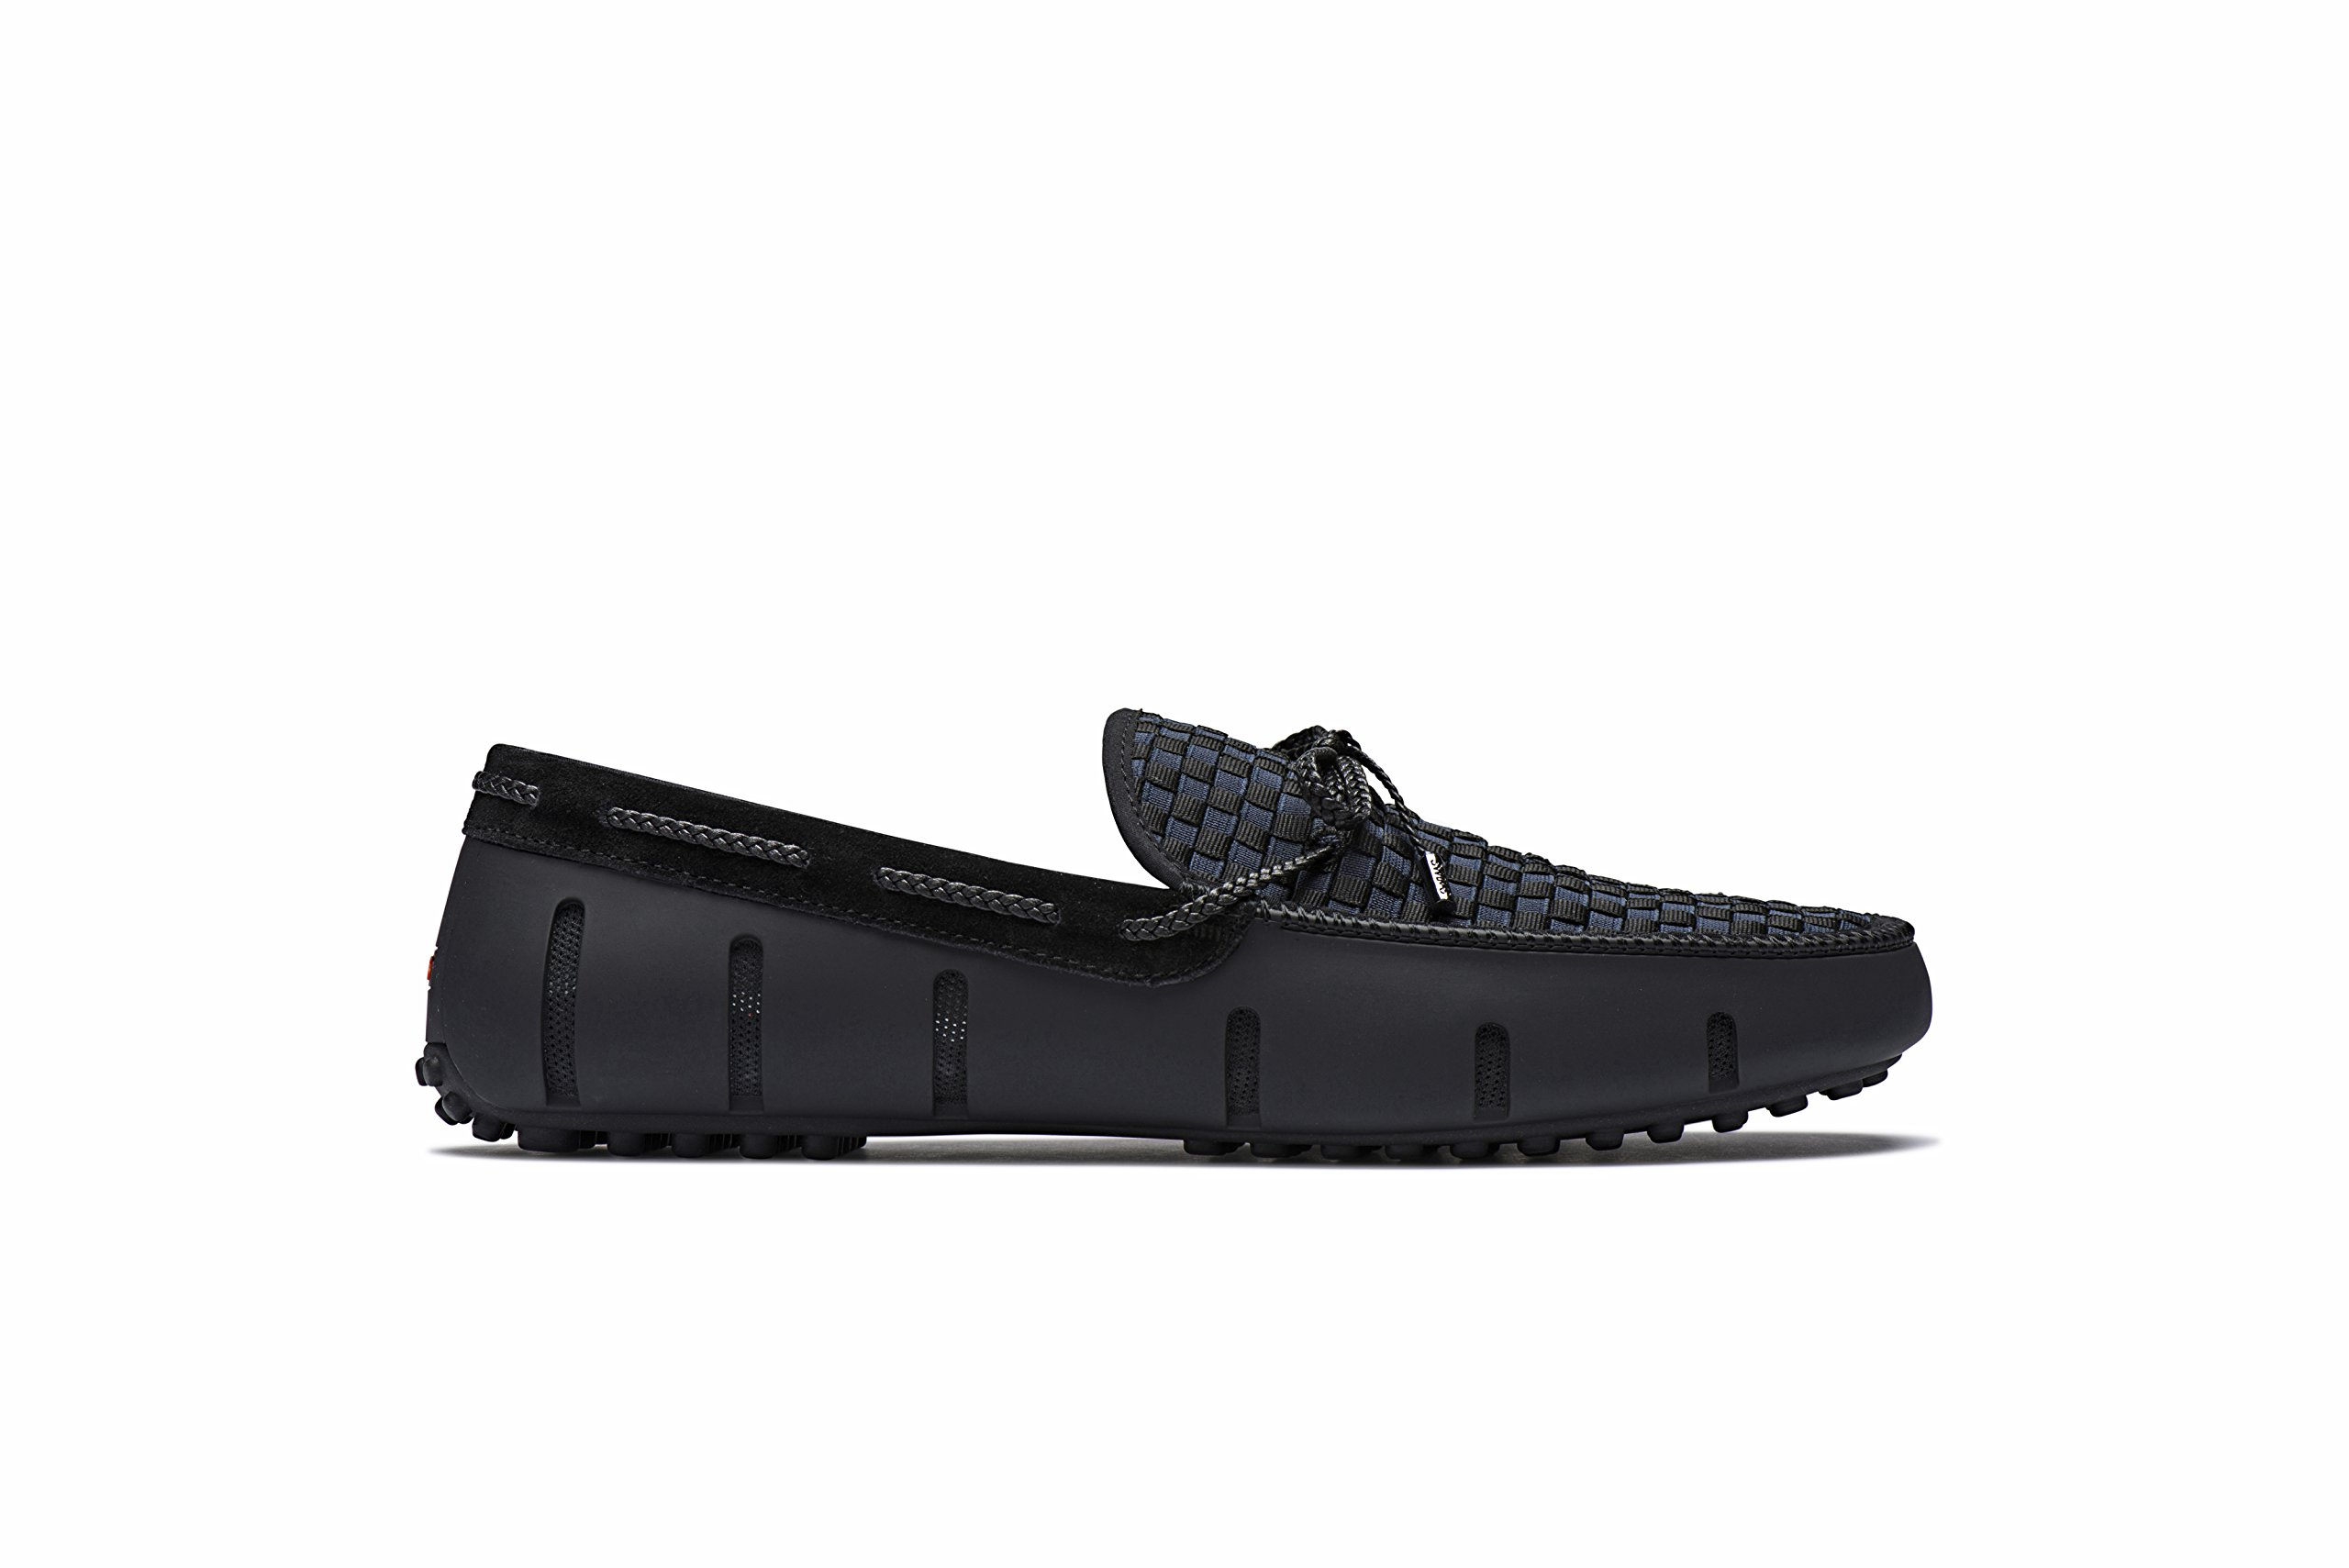 SWIMS Men's Lux Lace Woven Loafer Shoes - Black/Navy, 8